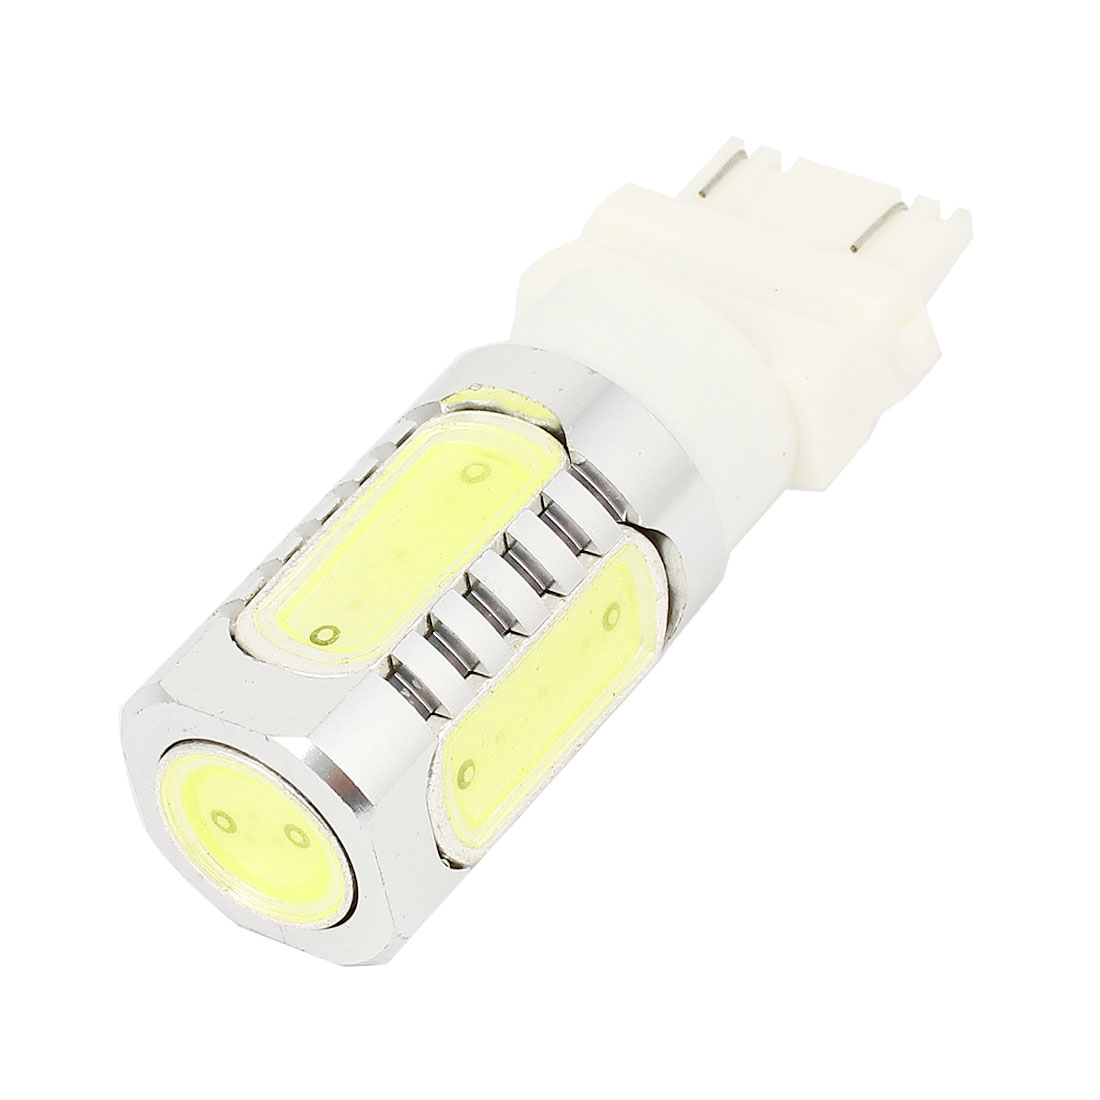 Vehicle Car 3157 5 White SMD LED Lens 7.5W Brake Stop Lamp Light DC 12V